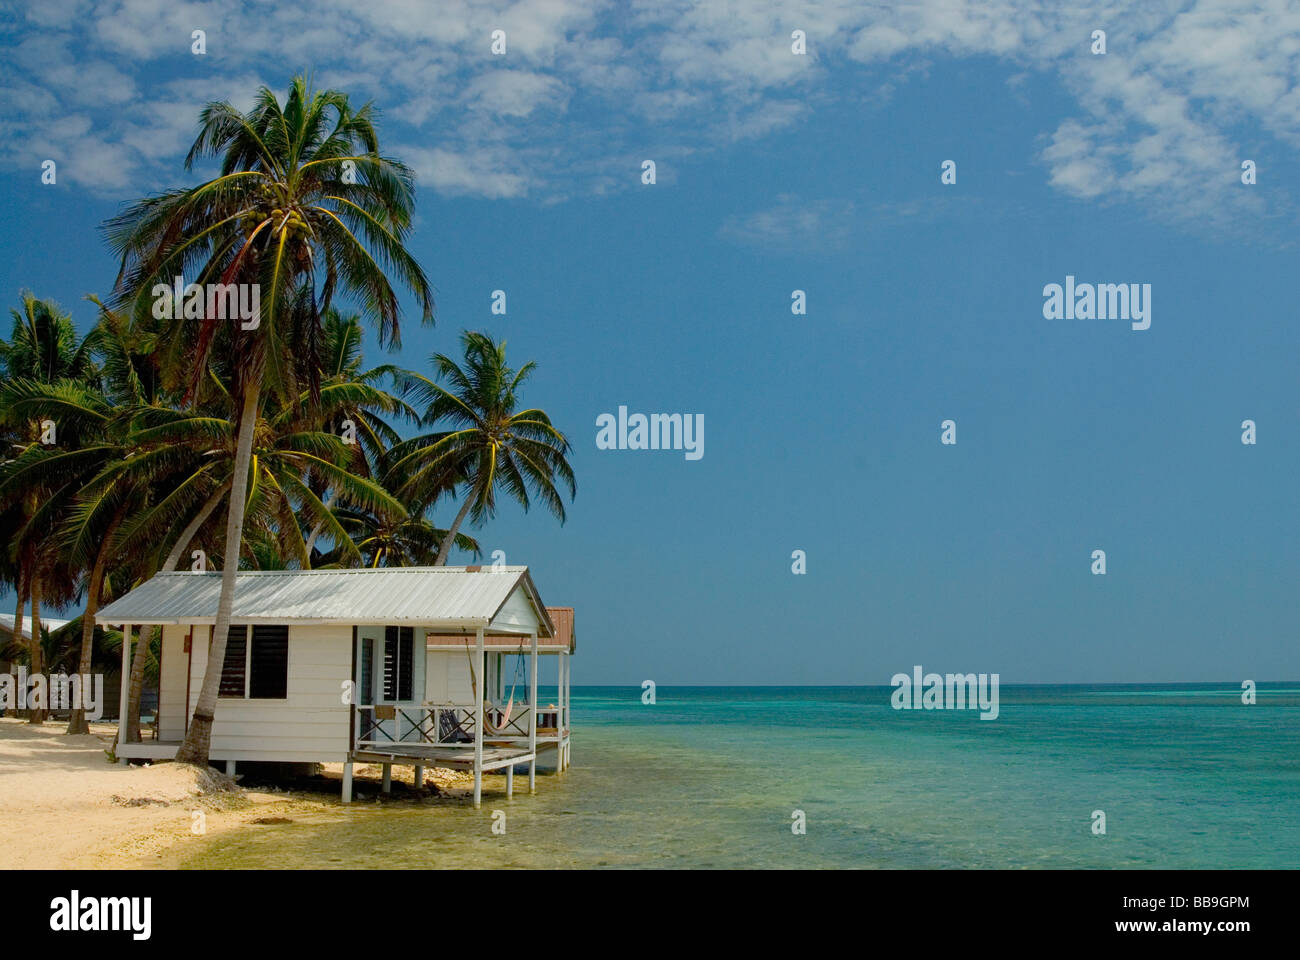 Tobacco Caye, Belize - Stock Image